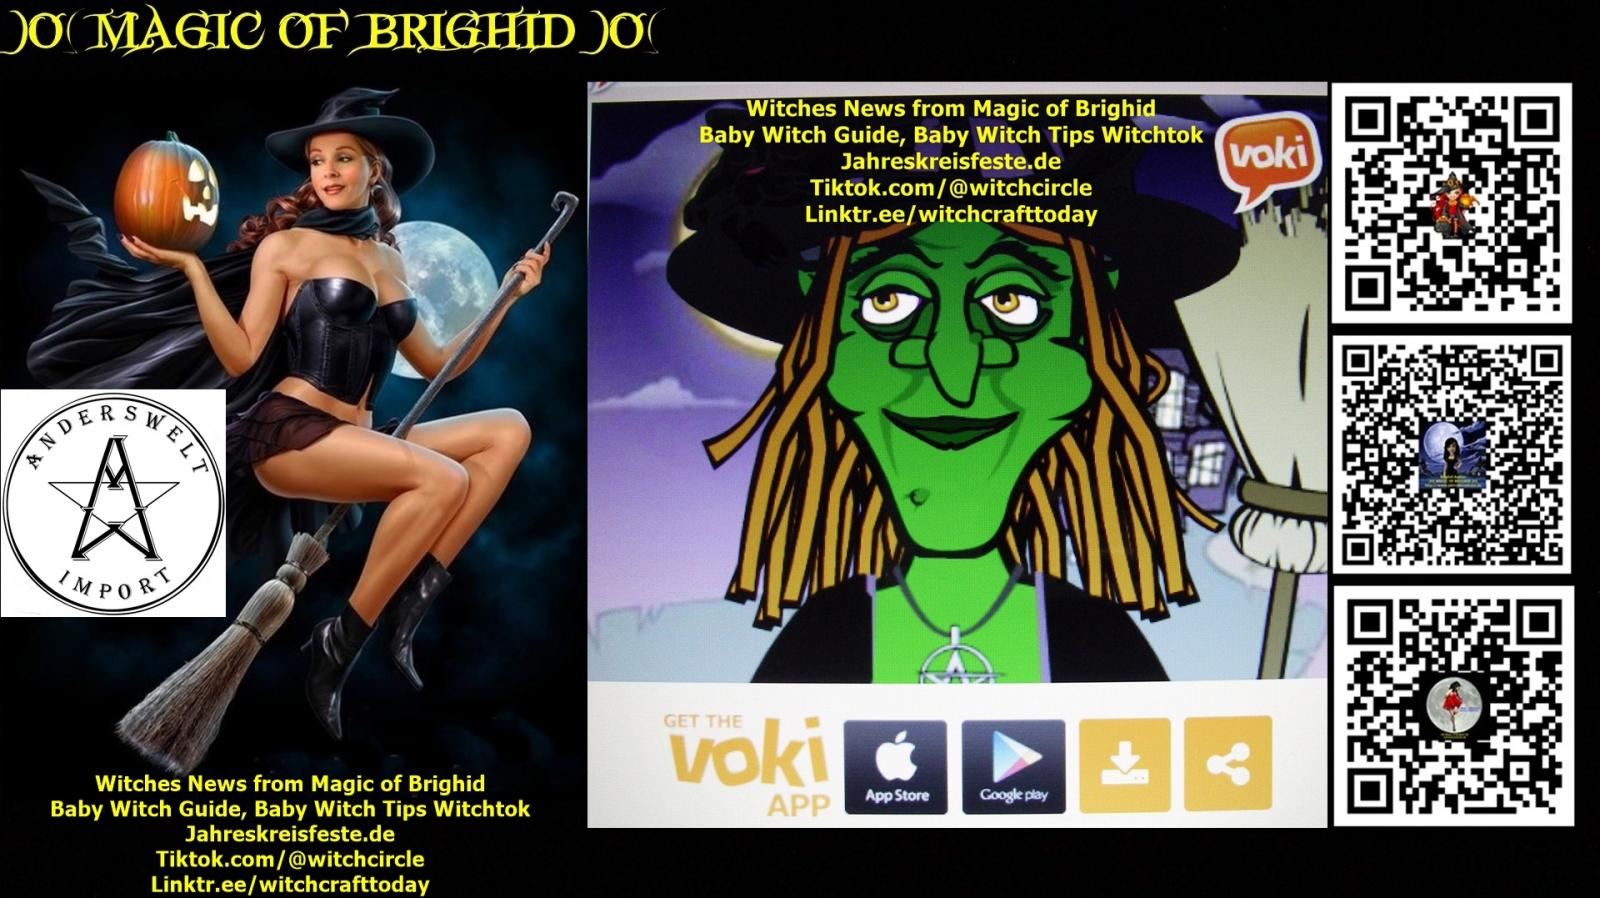 Witches News from Magic of Brighid, Baby Witch Guide, Baby Witch Tips Witchtok, Sorcieres tiktok